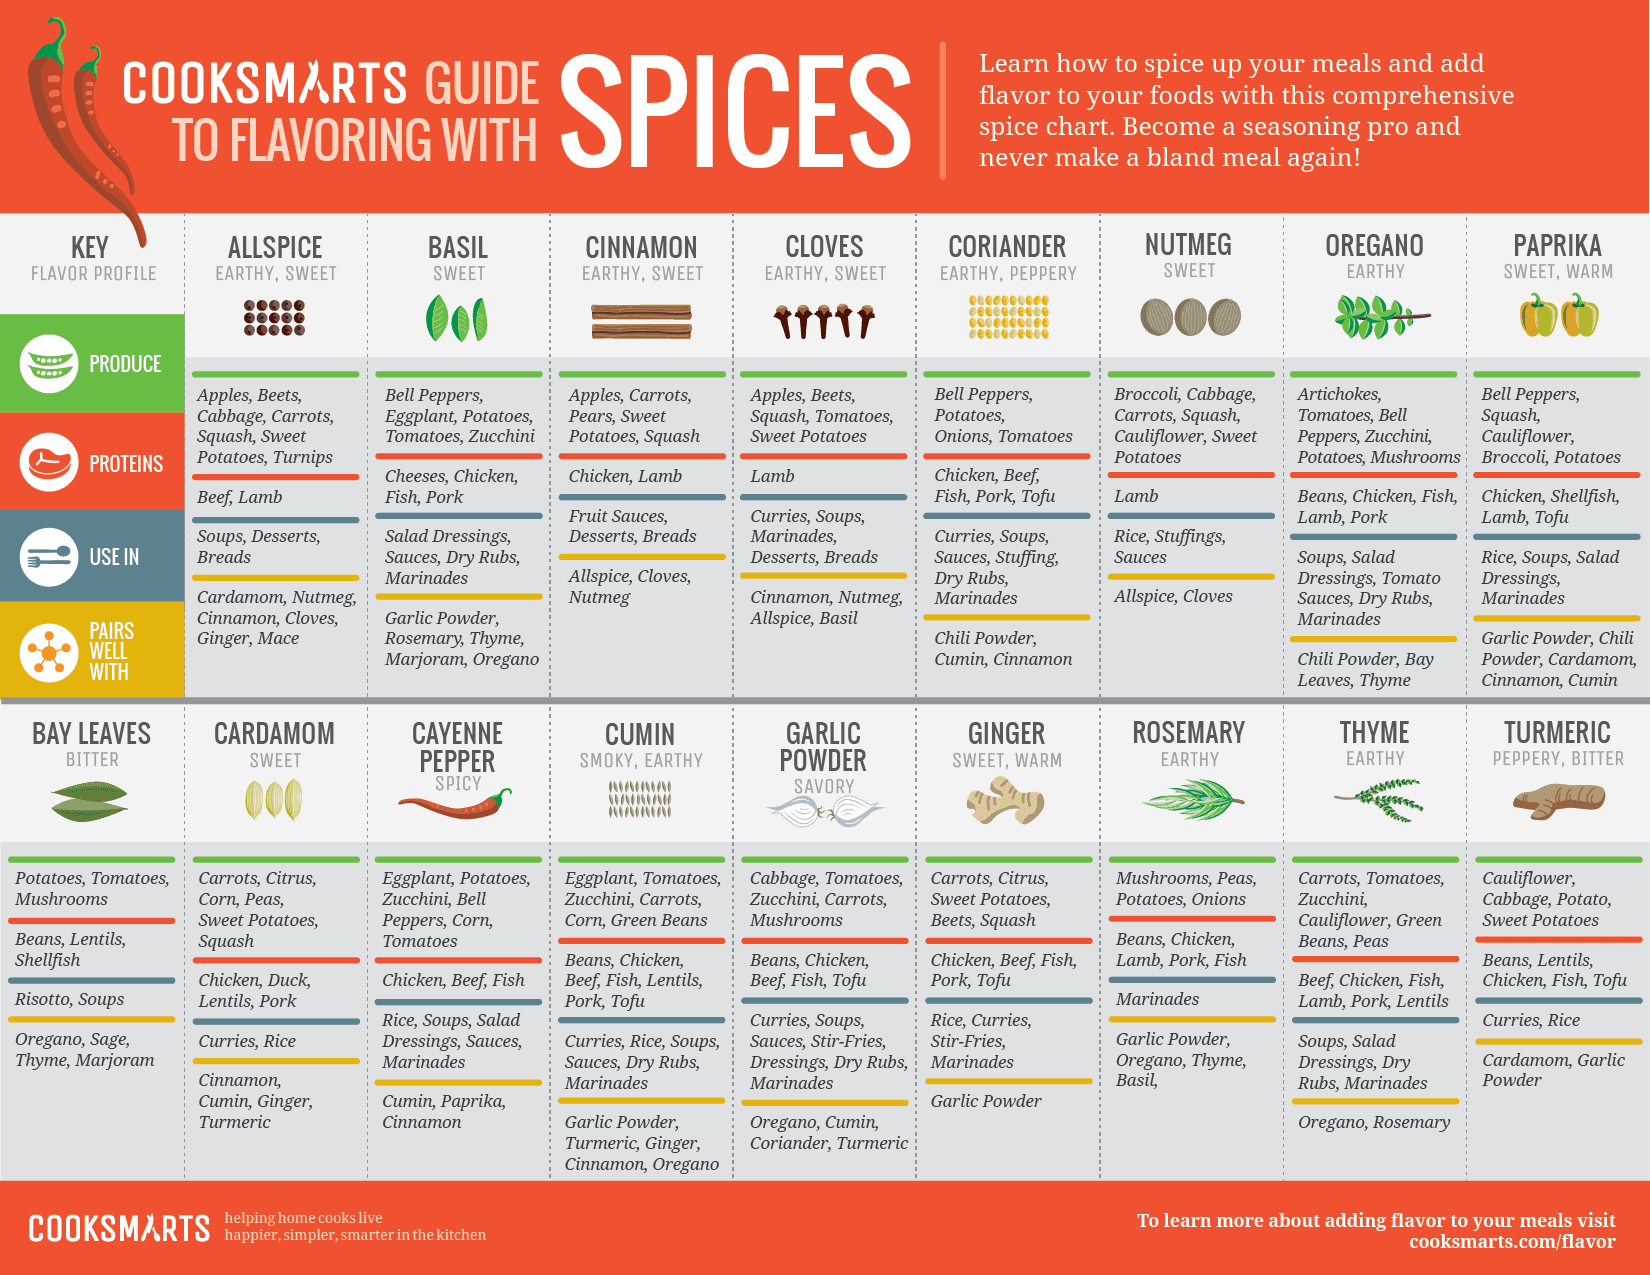 cook-smarts-guide-to-flavoring-with-spices_543325358c24f.png